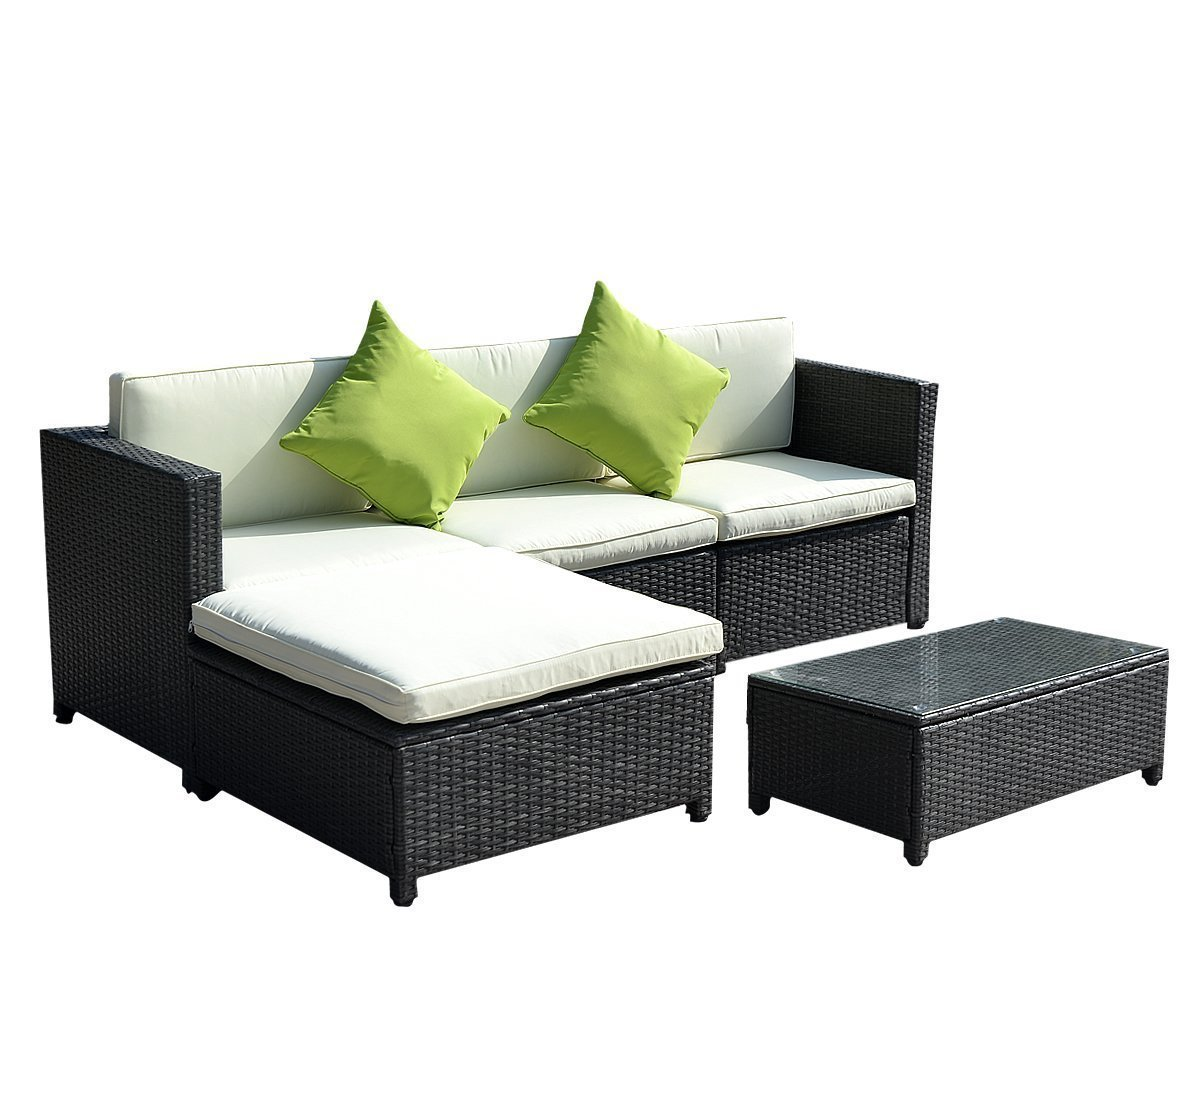 amazon com goplus outdoor patio 5pc furniture sectional pe wicker rh amazon com Wicker Rattan Outdoor Furniture roma pe rattan garden furniture